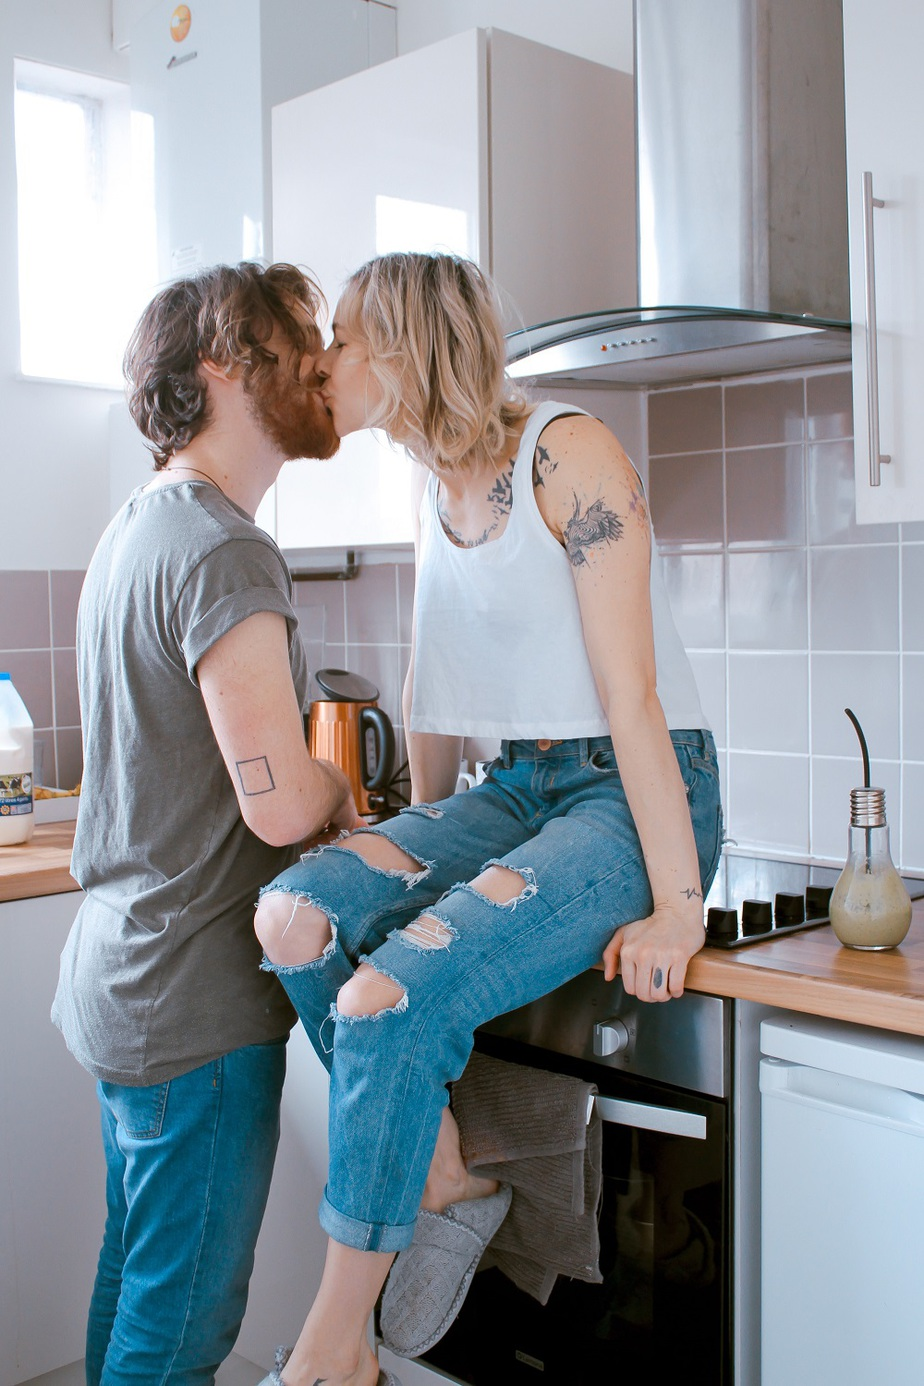 We have a list of List of cute relationship goals you can set for yourself and your significant other. And if you are looking for relationship goals examples, just click here.